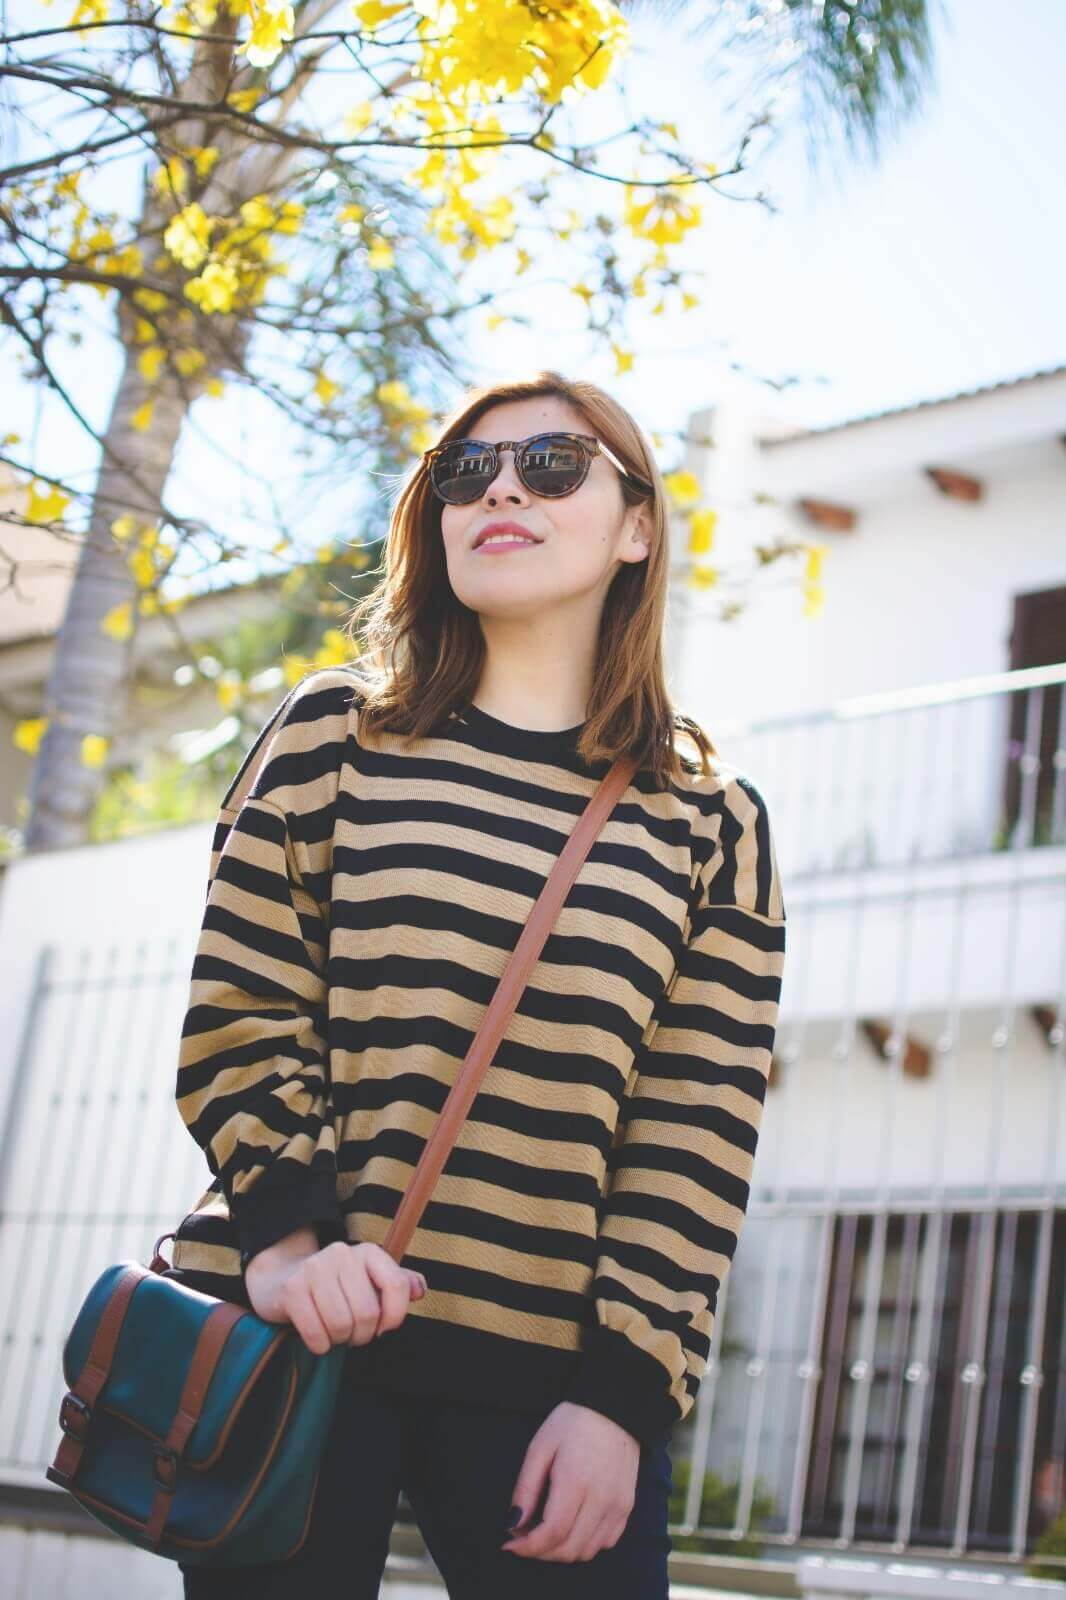 sammydress-block-heel-sandals-leopard-frame-light-brown-sammydress-sunglasses-deborah-ferrero-style-by-deb-streetstyle-salta-striped-sweater-fall2016-trends03